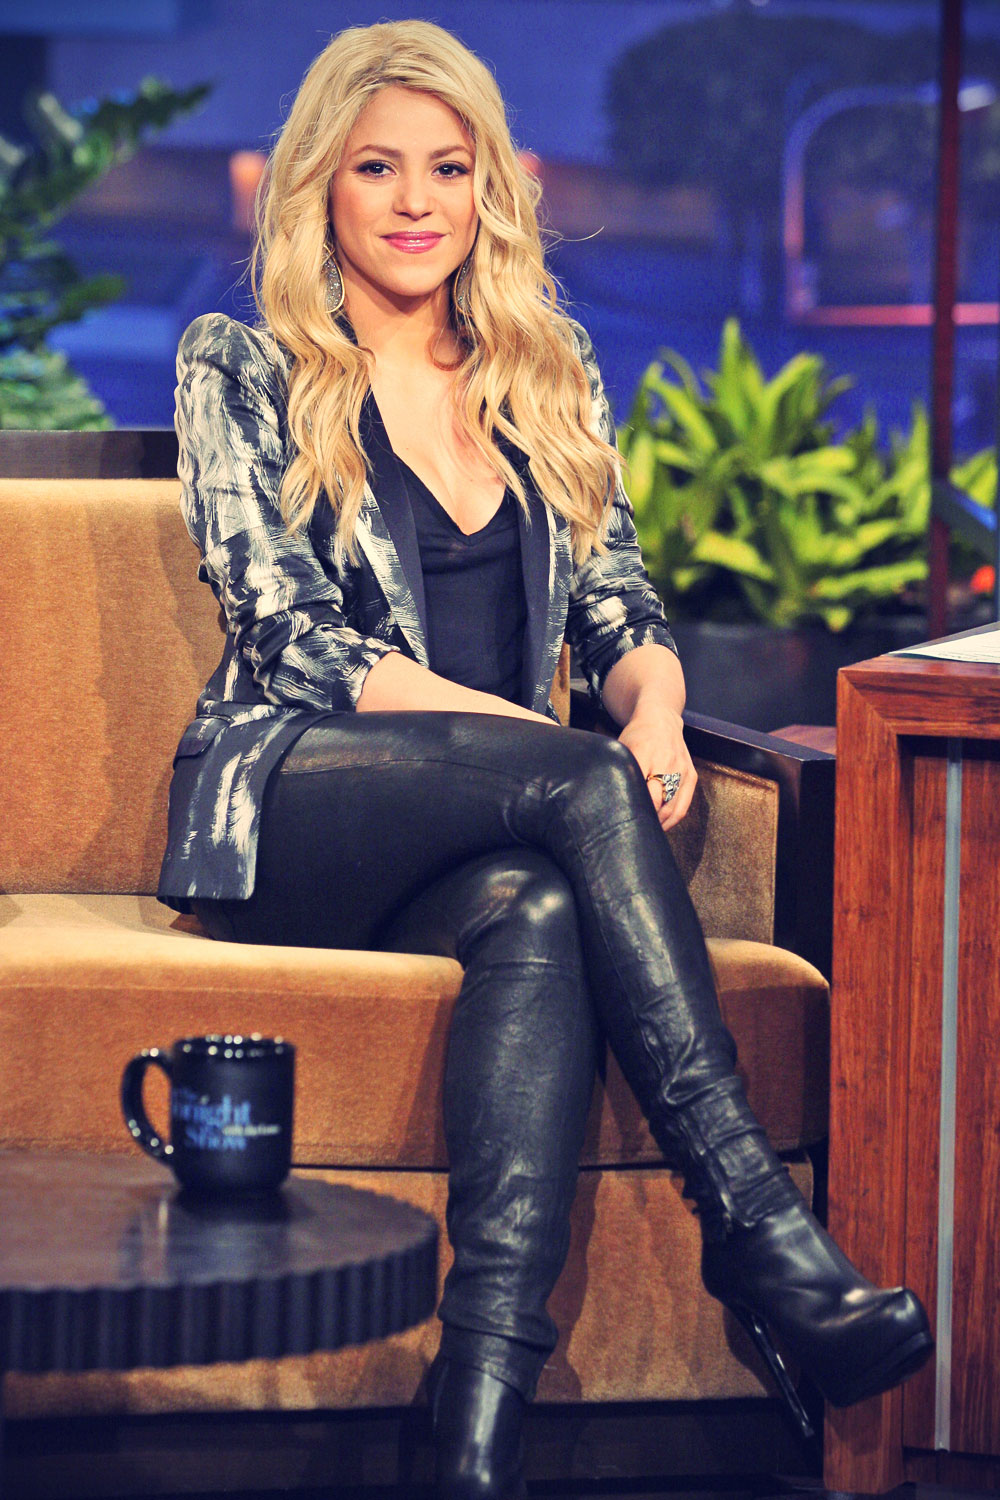 Shakira on the Tonight Show with Jay Leno